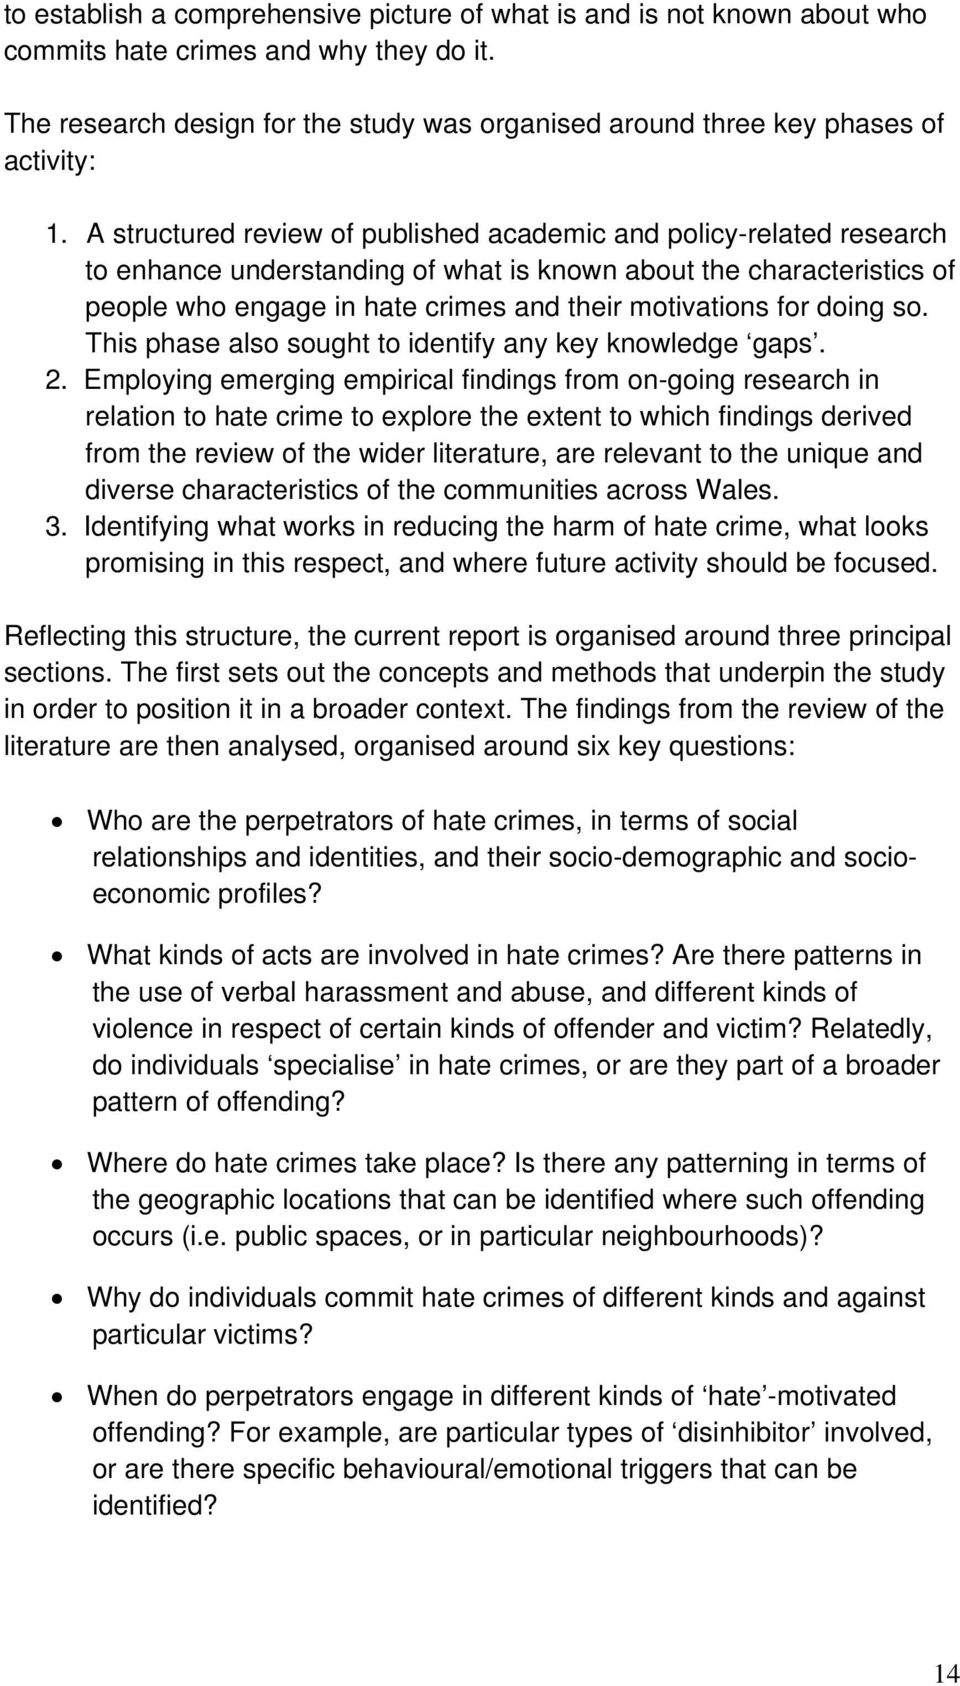 A structured review of published academic and policy-related research to enhance understanding of what is known about the characteristics of people who engage in hate crimes and their motivations for